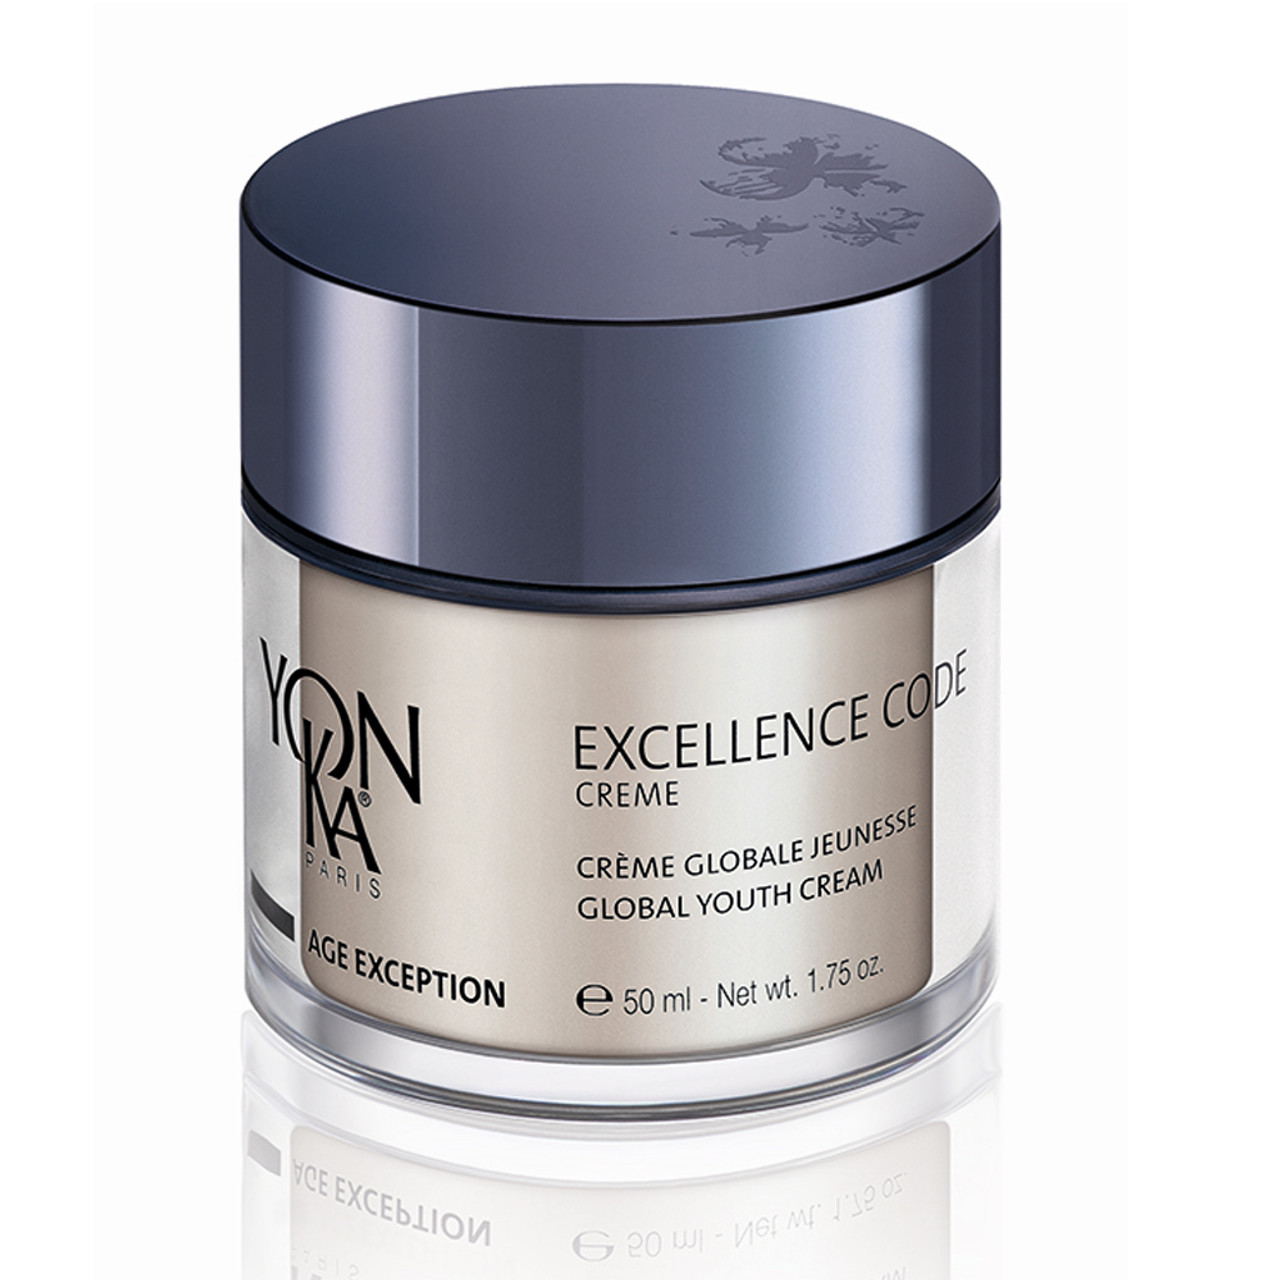 Yonka Age Exception Excellence Code Creme BeautifiedYou.com